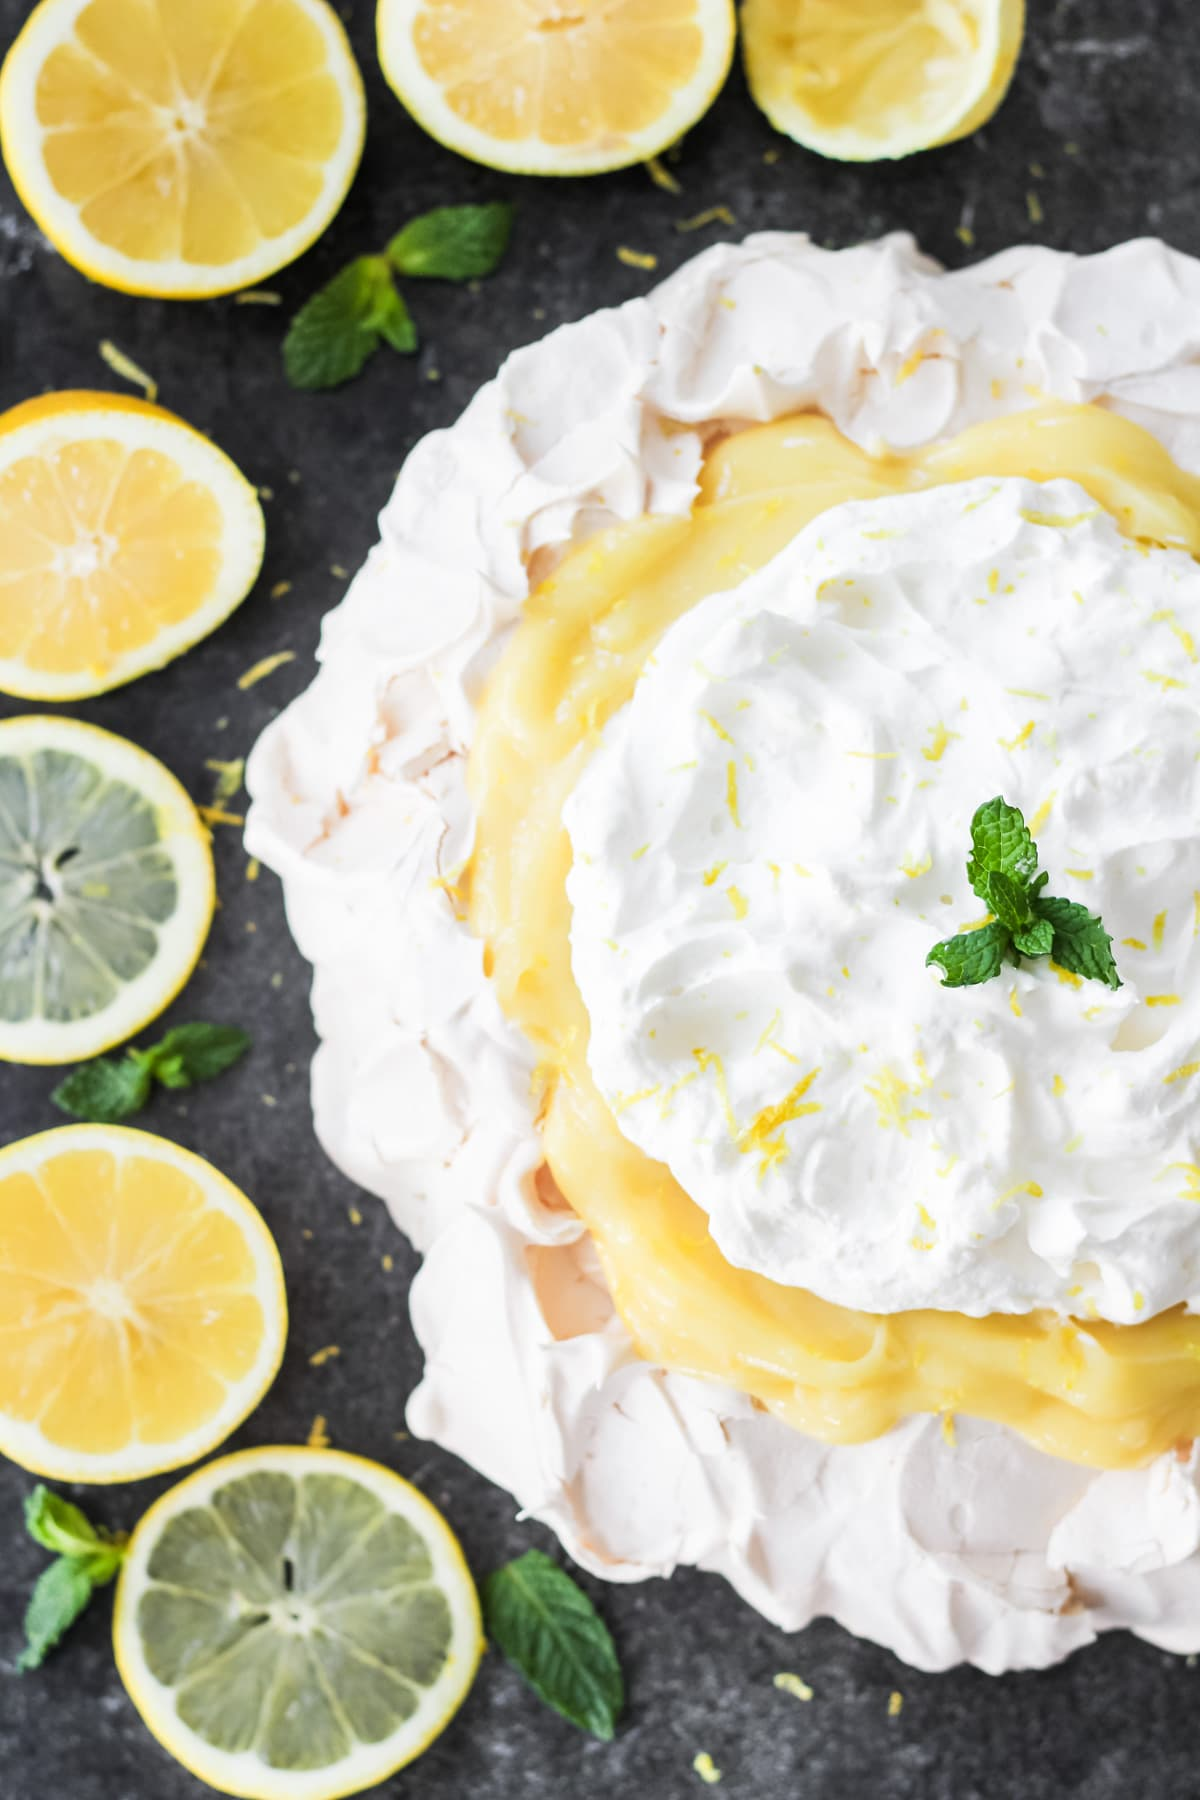 a top down view of half of a lemon pavlova with lemon curd and whipped cream. in the background are sliced lemons and sprigs of mint